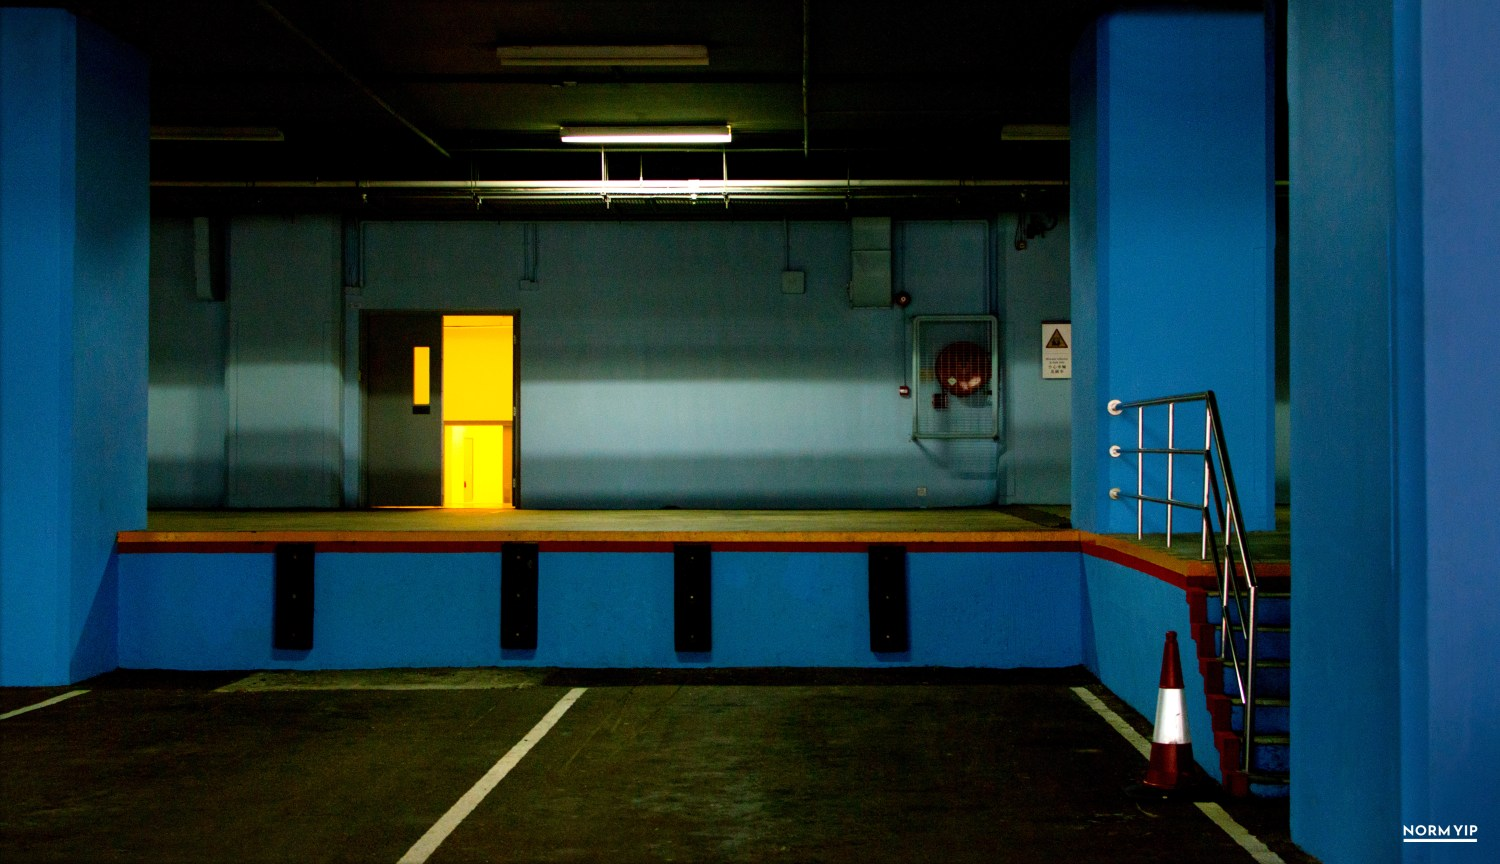 Urban photography of Hong Kong by visual artist Norm Yip.